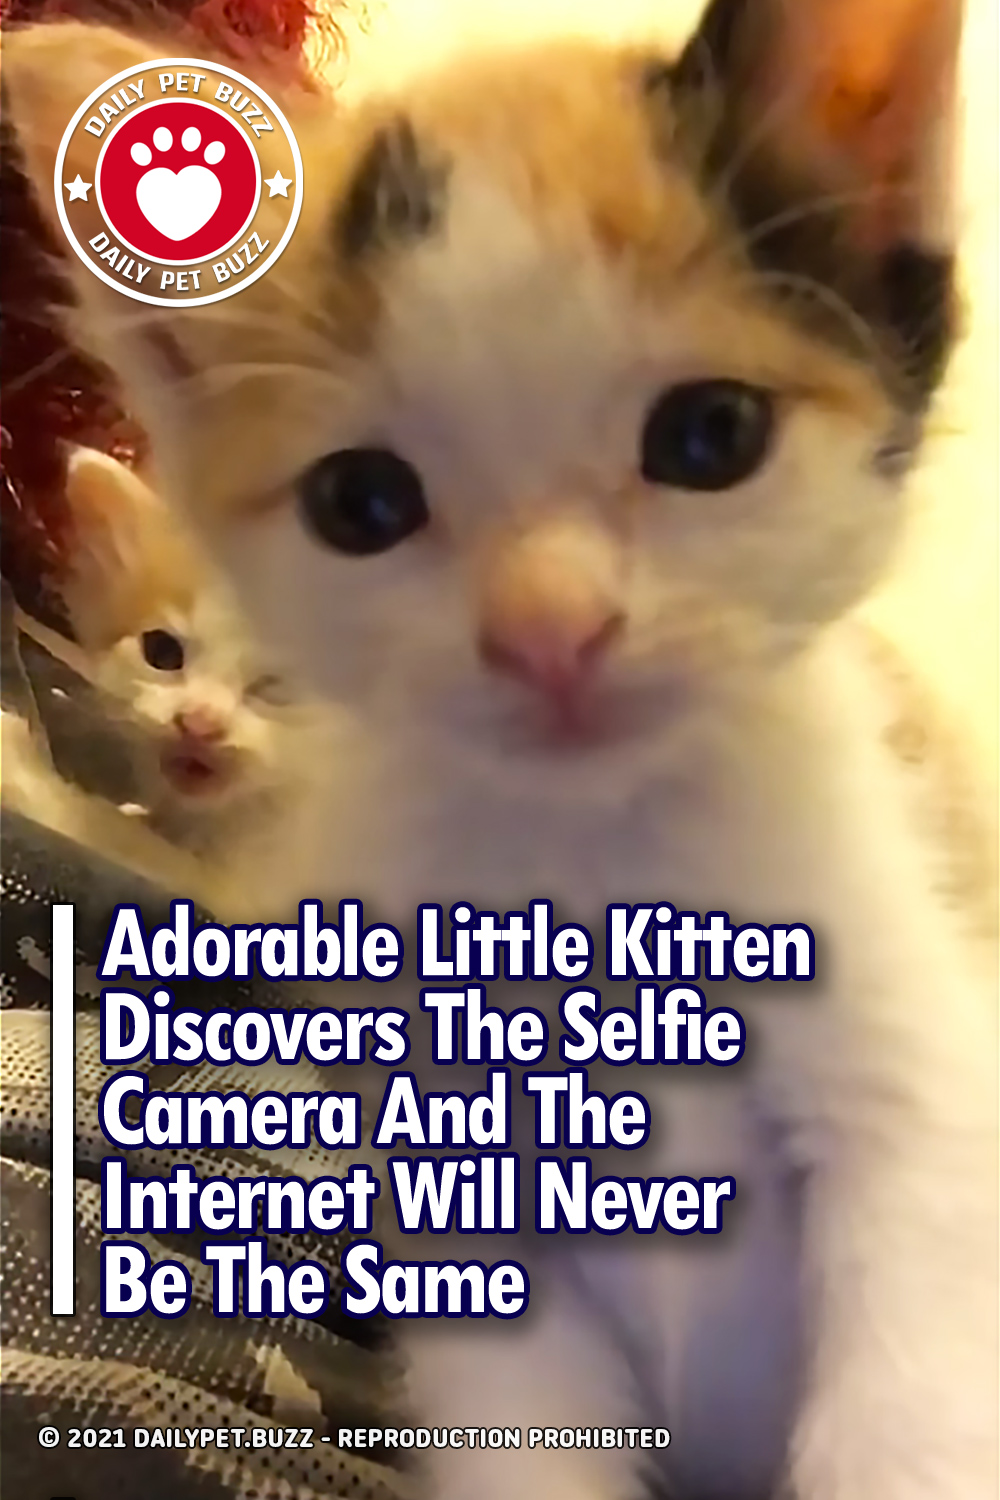 Adorable Little Kitten Discovers The Selfie Camera And The Internet Will Never Be The Same